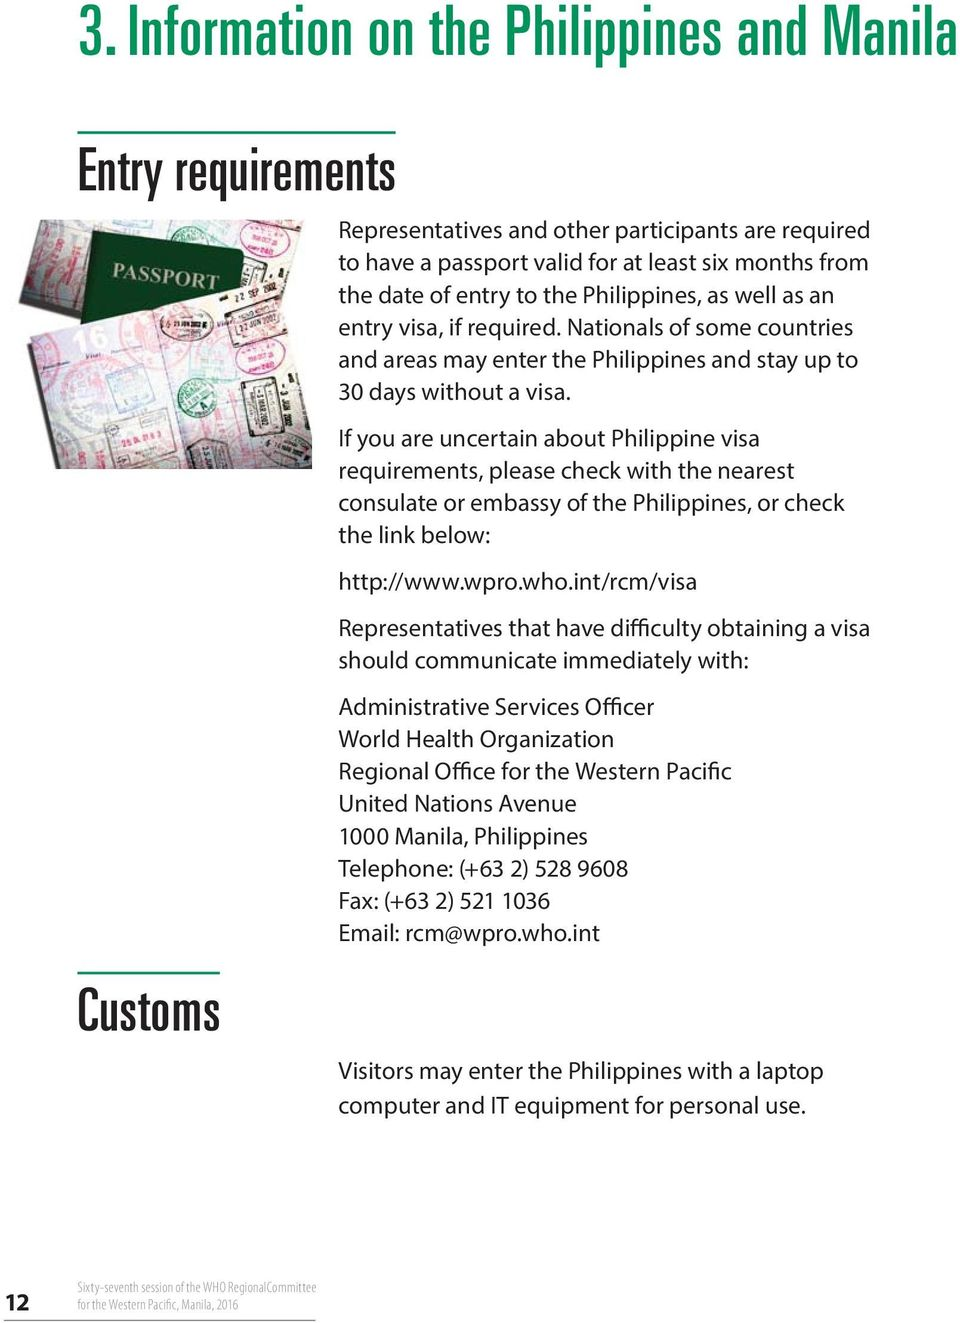 If you are uncertain about Philippine visa requirements, please check with the nearest consulate or embassy of the Philippines, or check the link below: http://www.wpro.who.